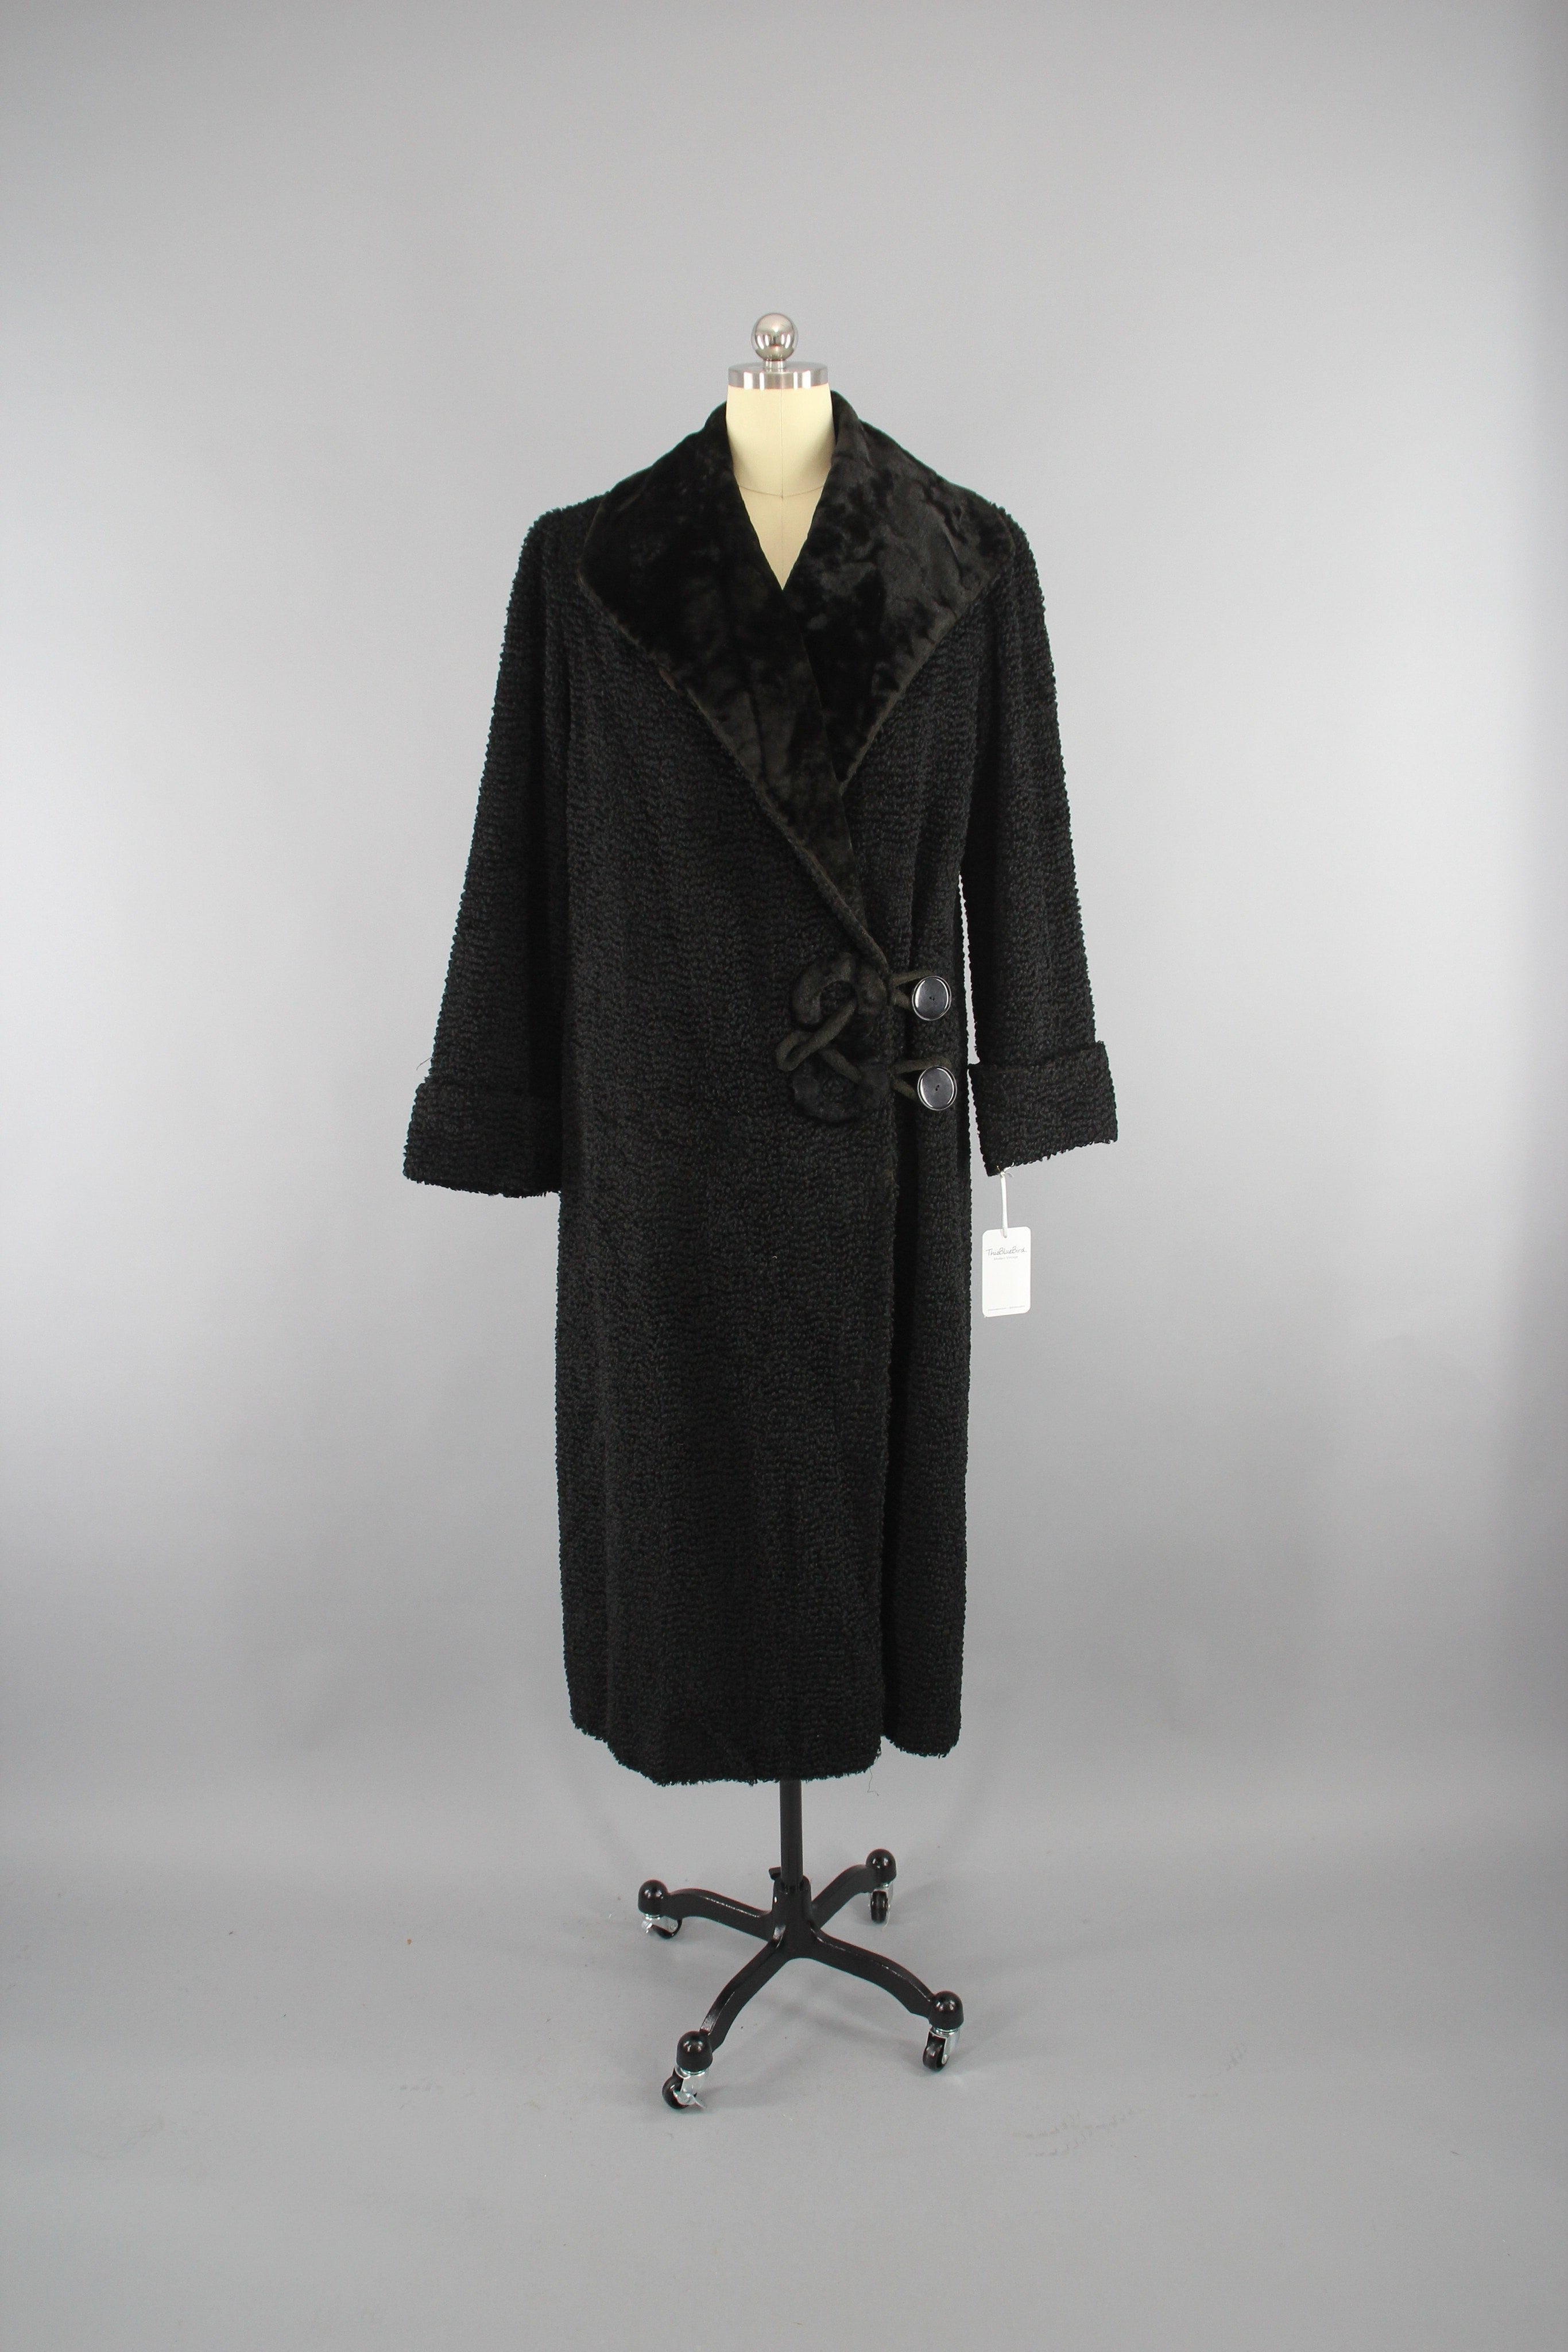 1910s Antique Vintage Edwardian Black Curly Persian Lamb Fur Coat Outerwear ThisBlueBird